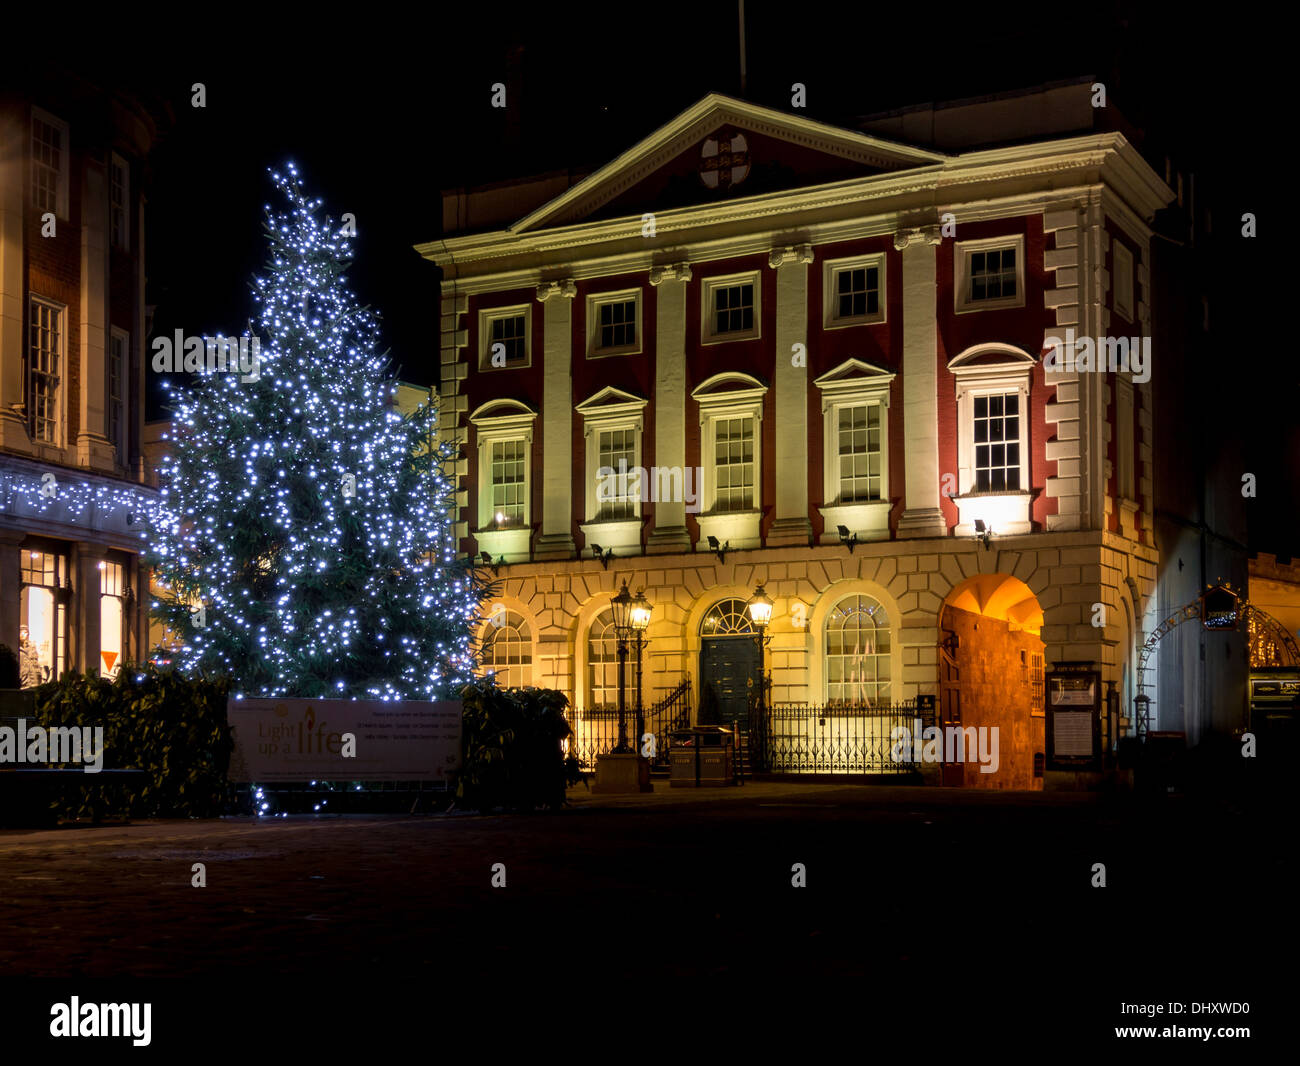 Christmas Tree With Lights Outside The Mansion House In York City